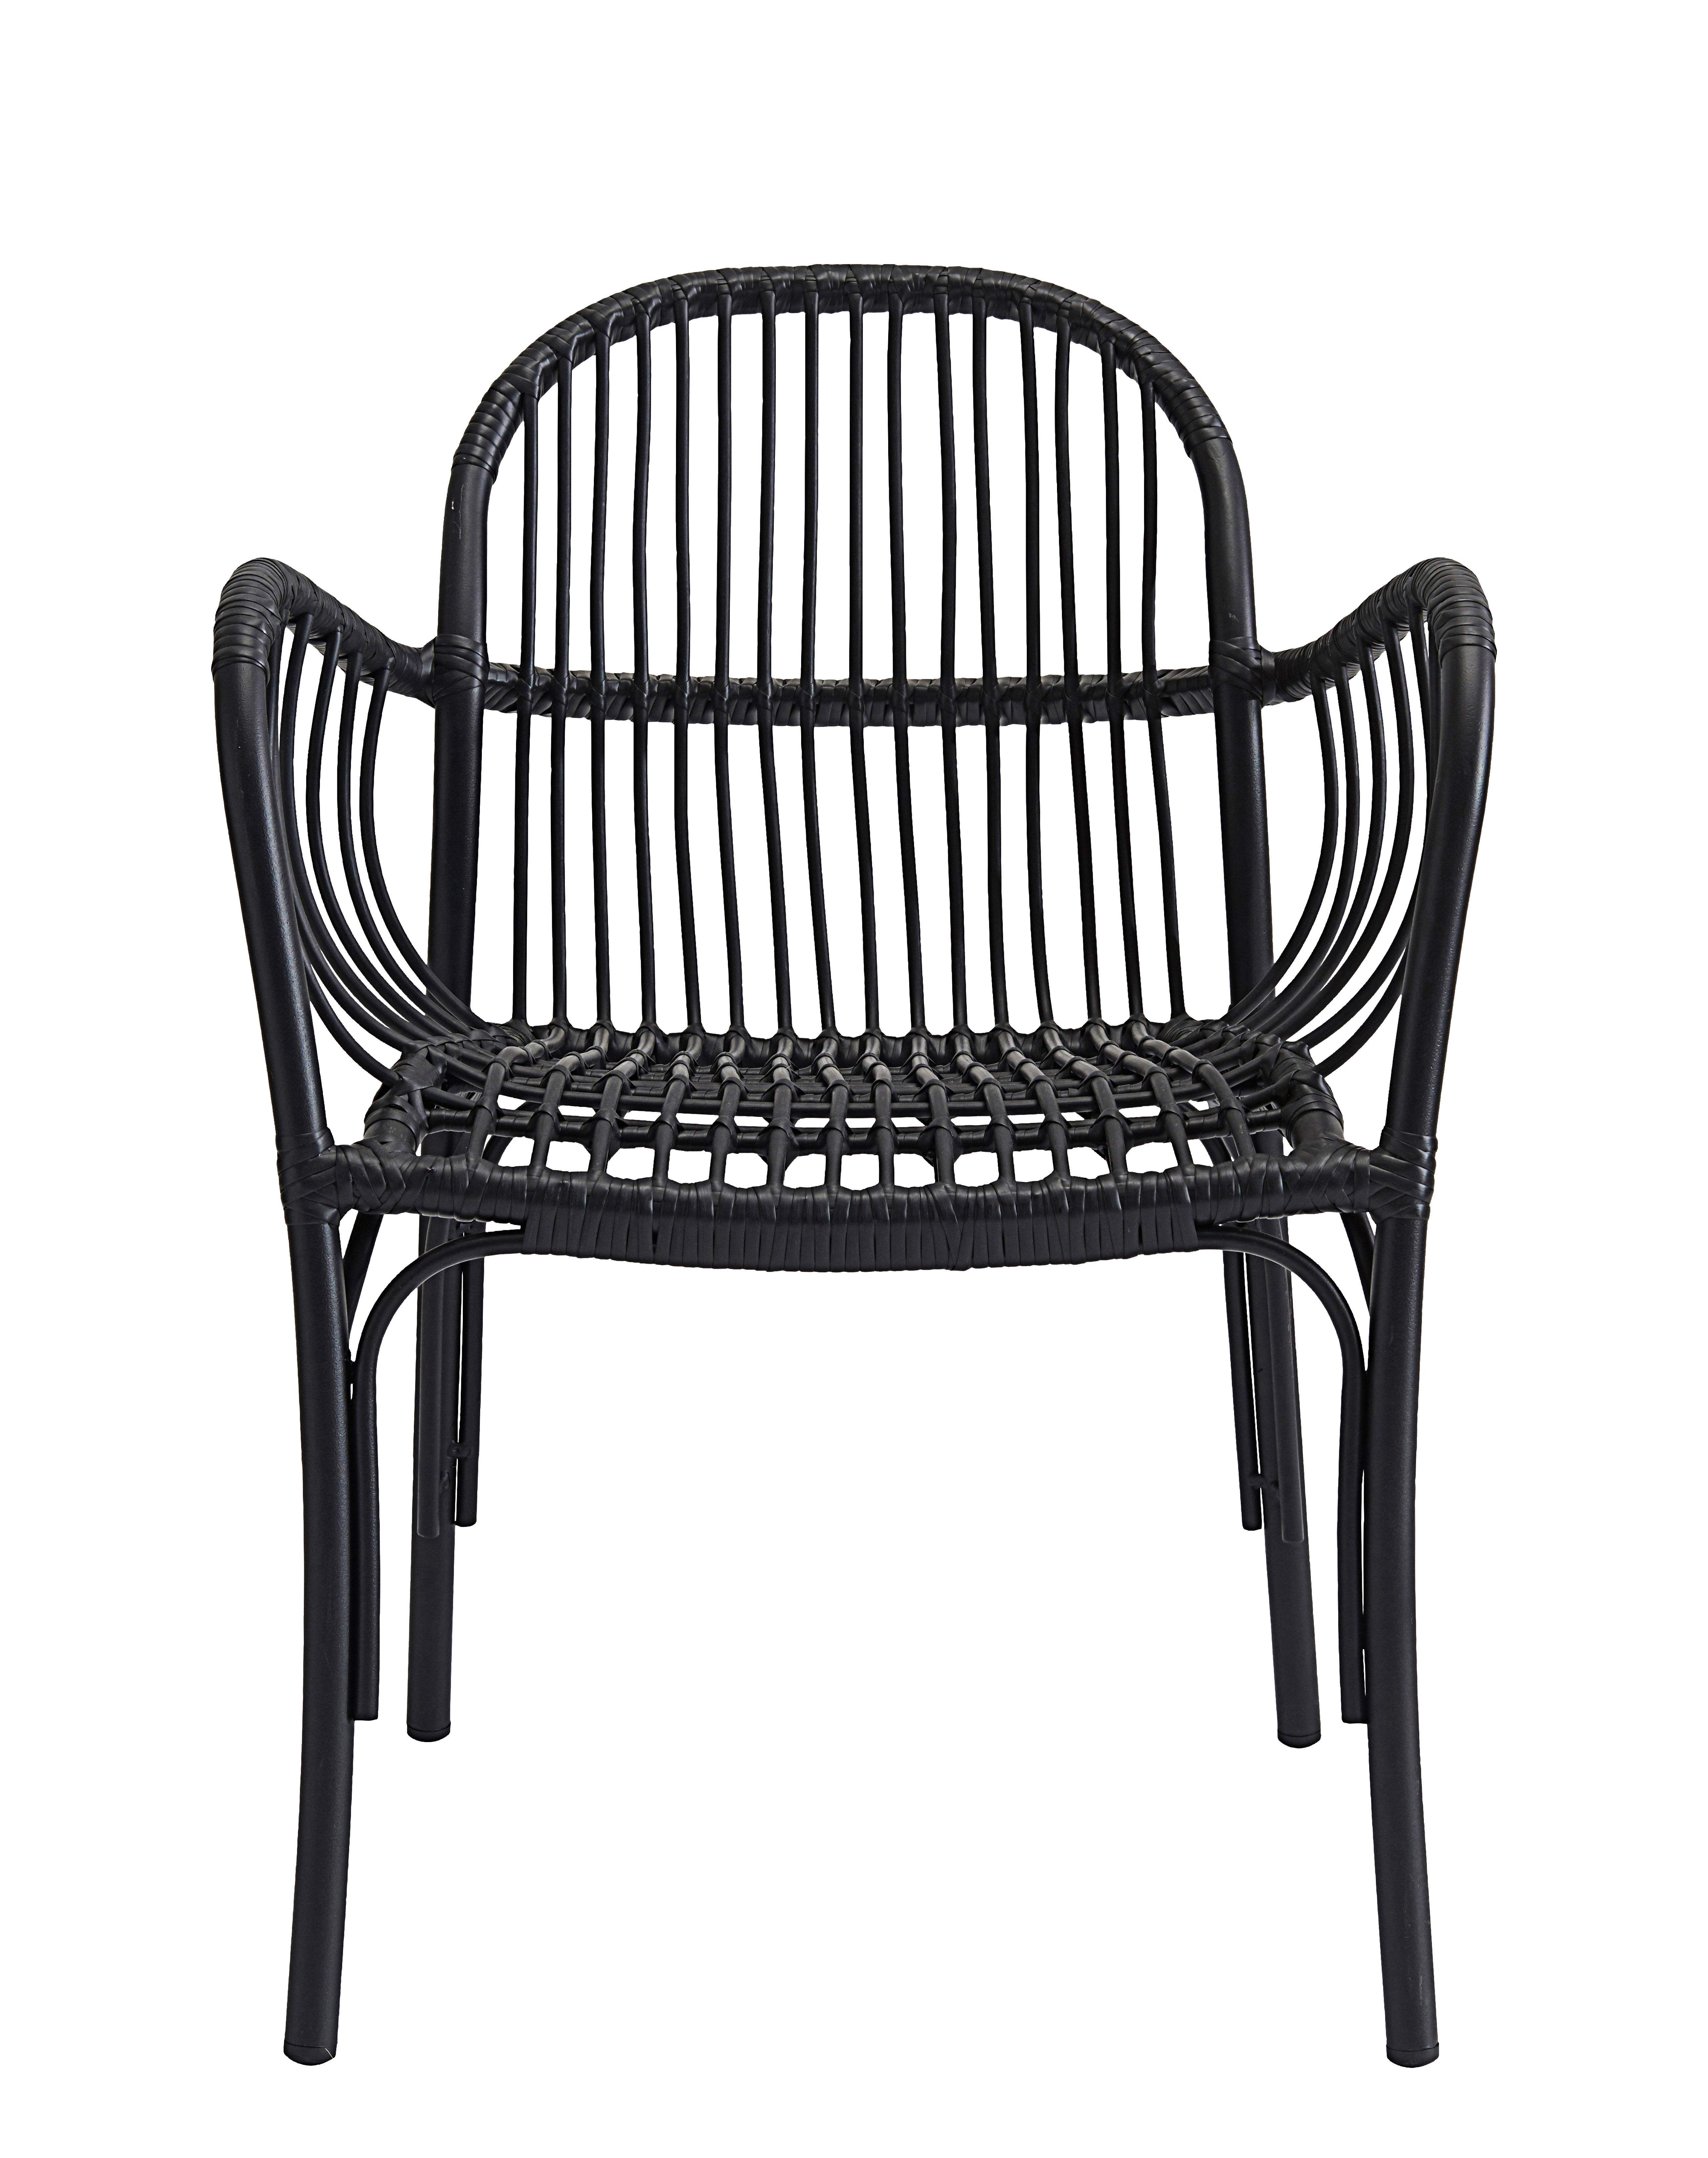 Outdoor - Chairs - Brea Armchair - / for outdoors by House Doctor - Black - Aluminium, Polythene